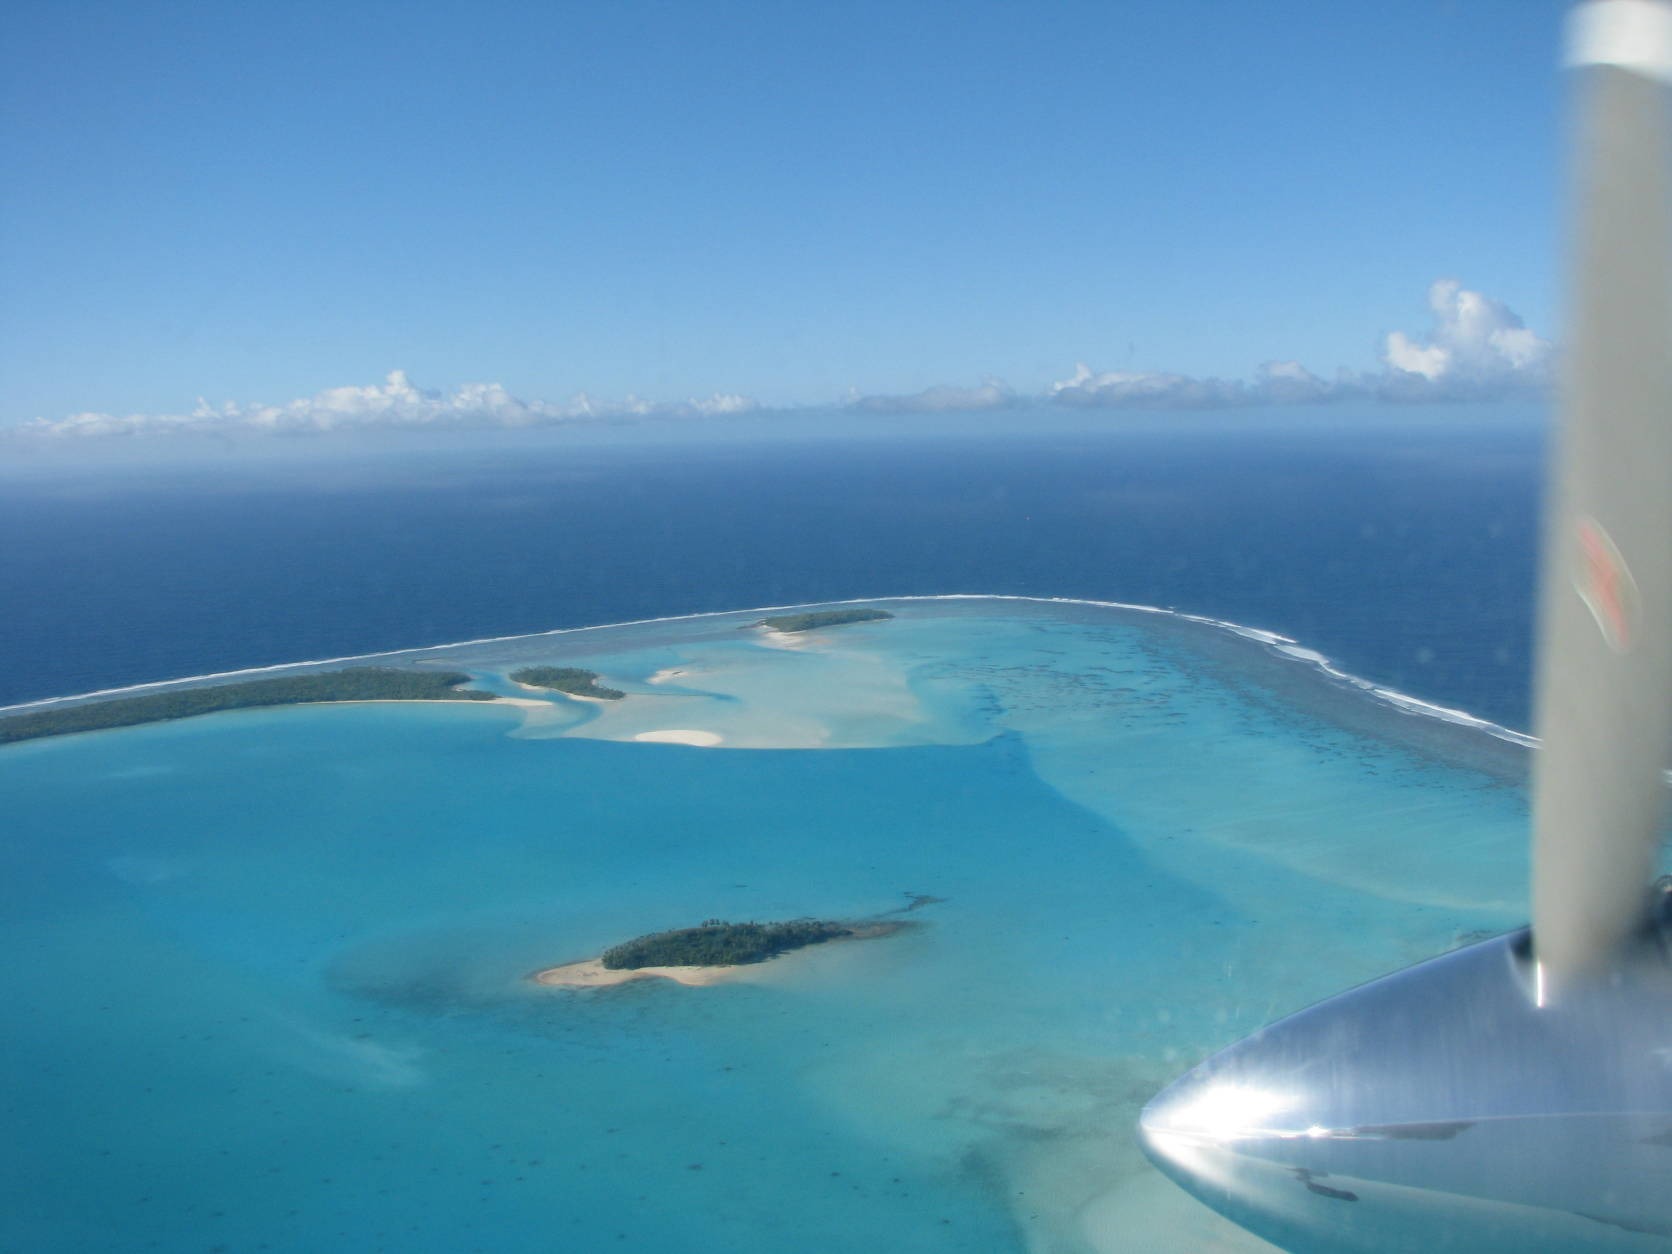 This July 9, 2016 photo shows a flight arriving over the Aitutaki lagoon in the South Pacific's Cook Islands group. A handful of islets inside a reef, Aitutaki is a dream-perfect tropical paradise, minus the crowds and prices, only two flights away from Los Angeles, Sydney, New Zealand and Tahiti. (Giovanna Dell'Orto via AP)